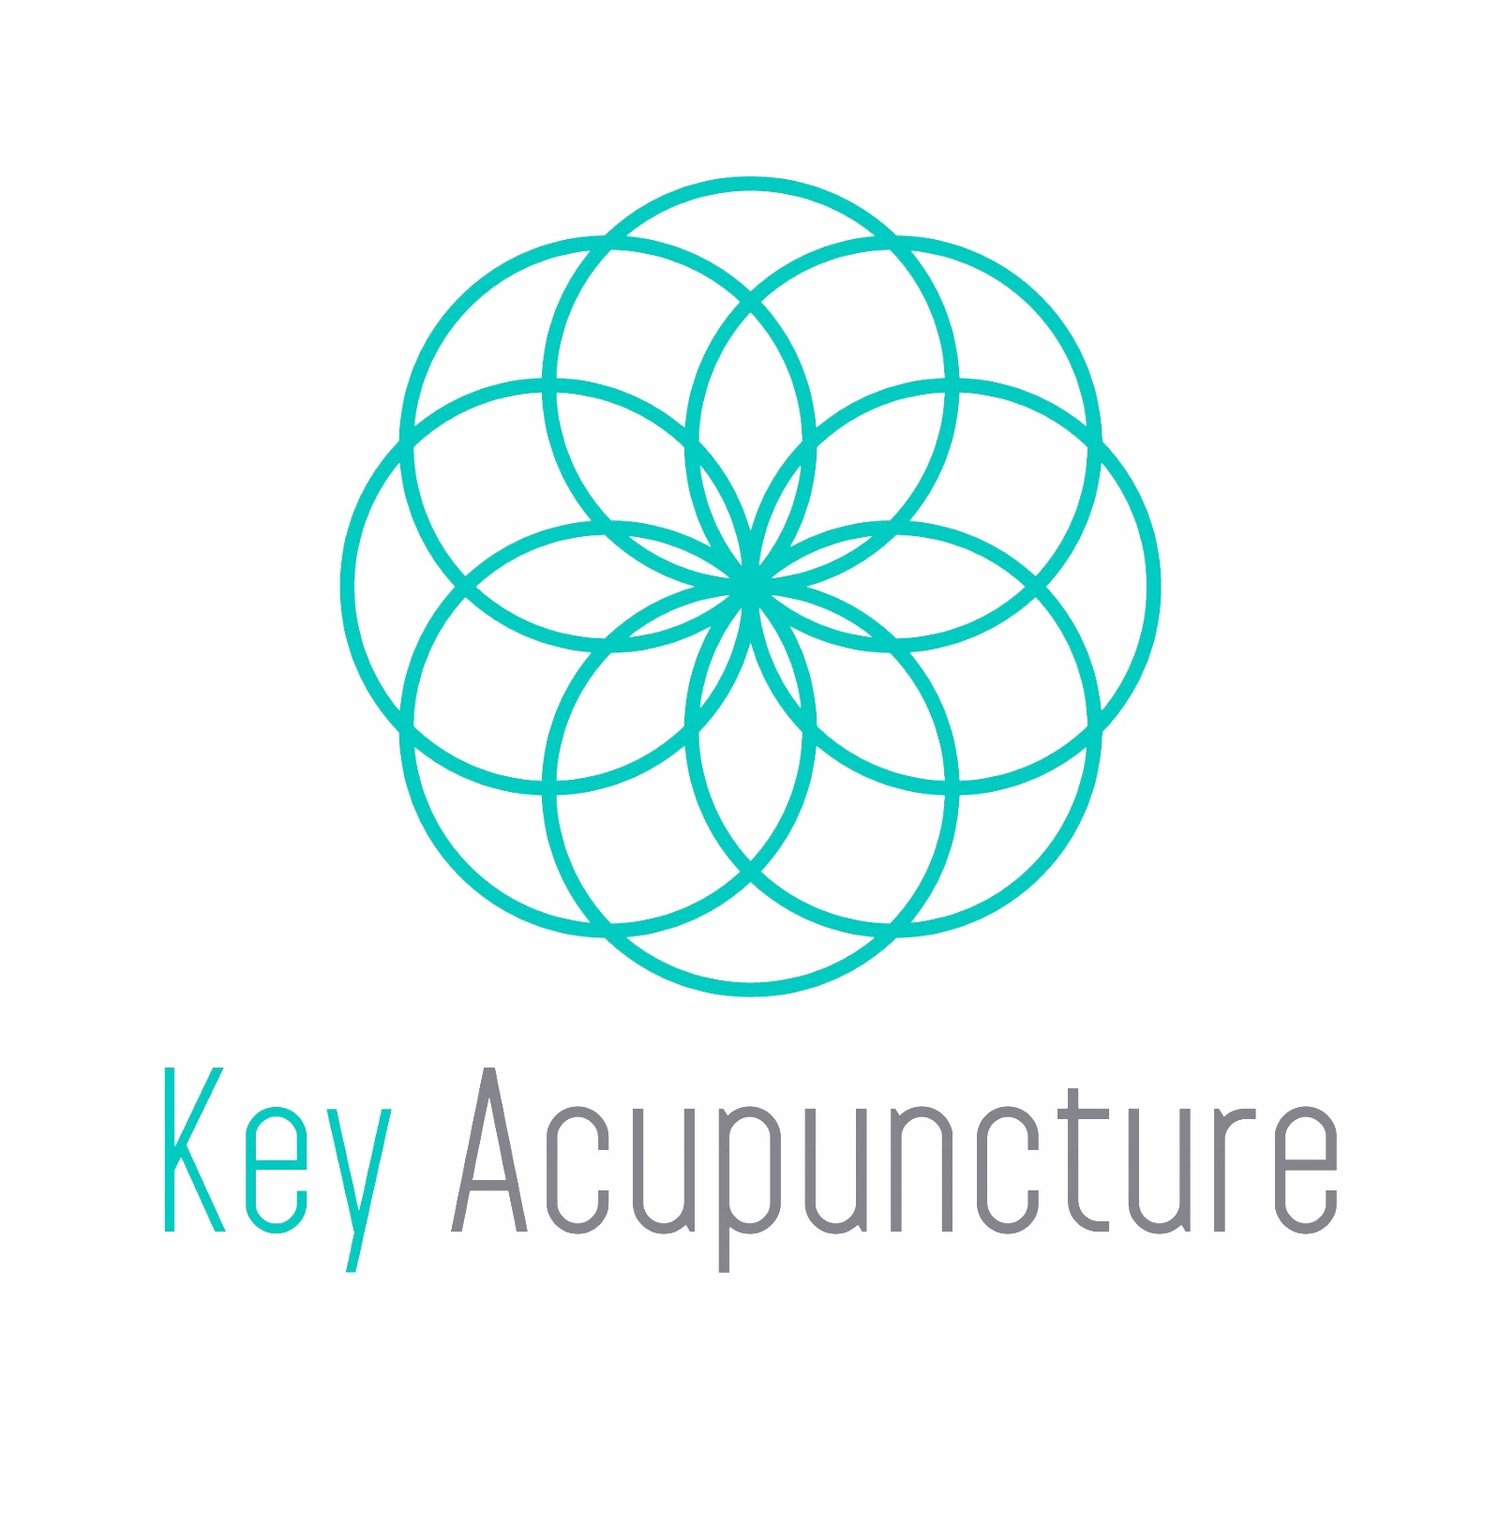 key acupuncture